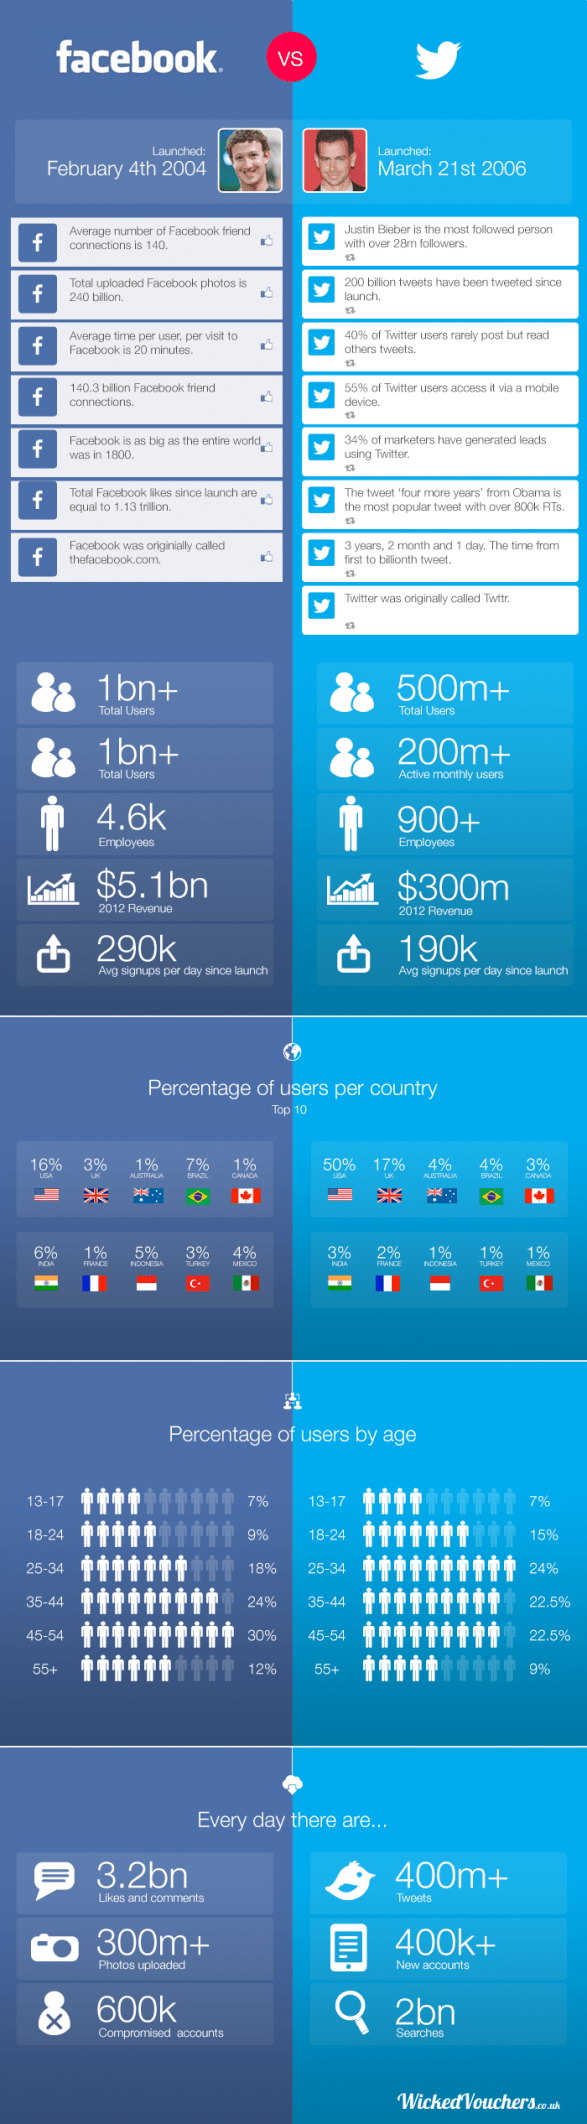 Facebook vs Twitter - THE FACTS